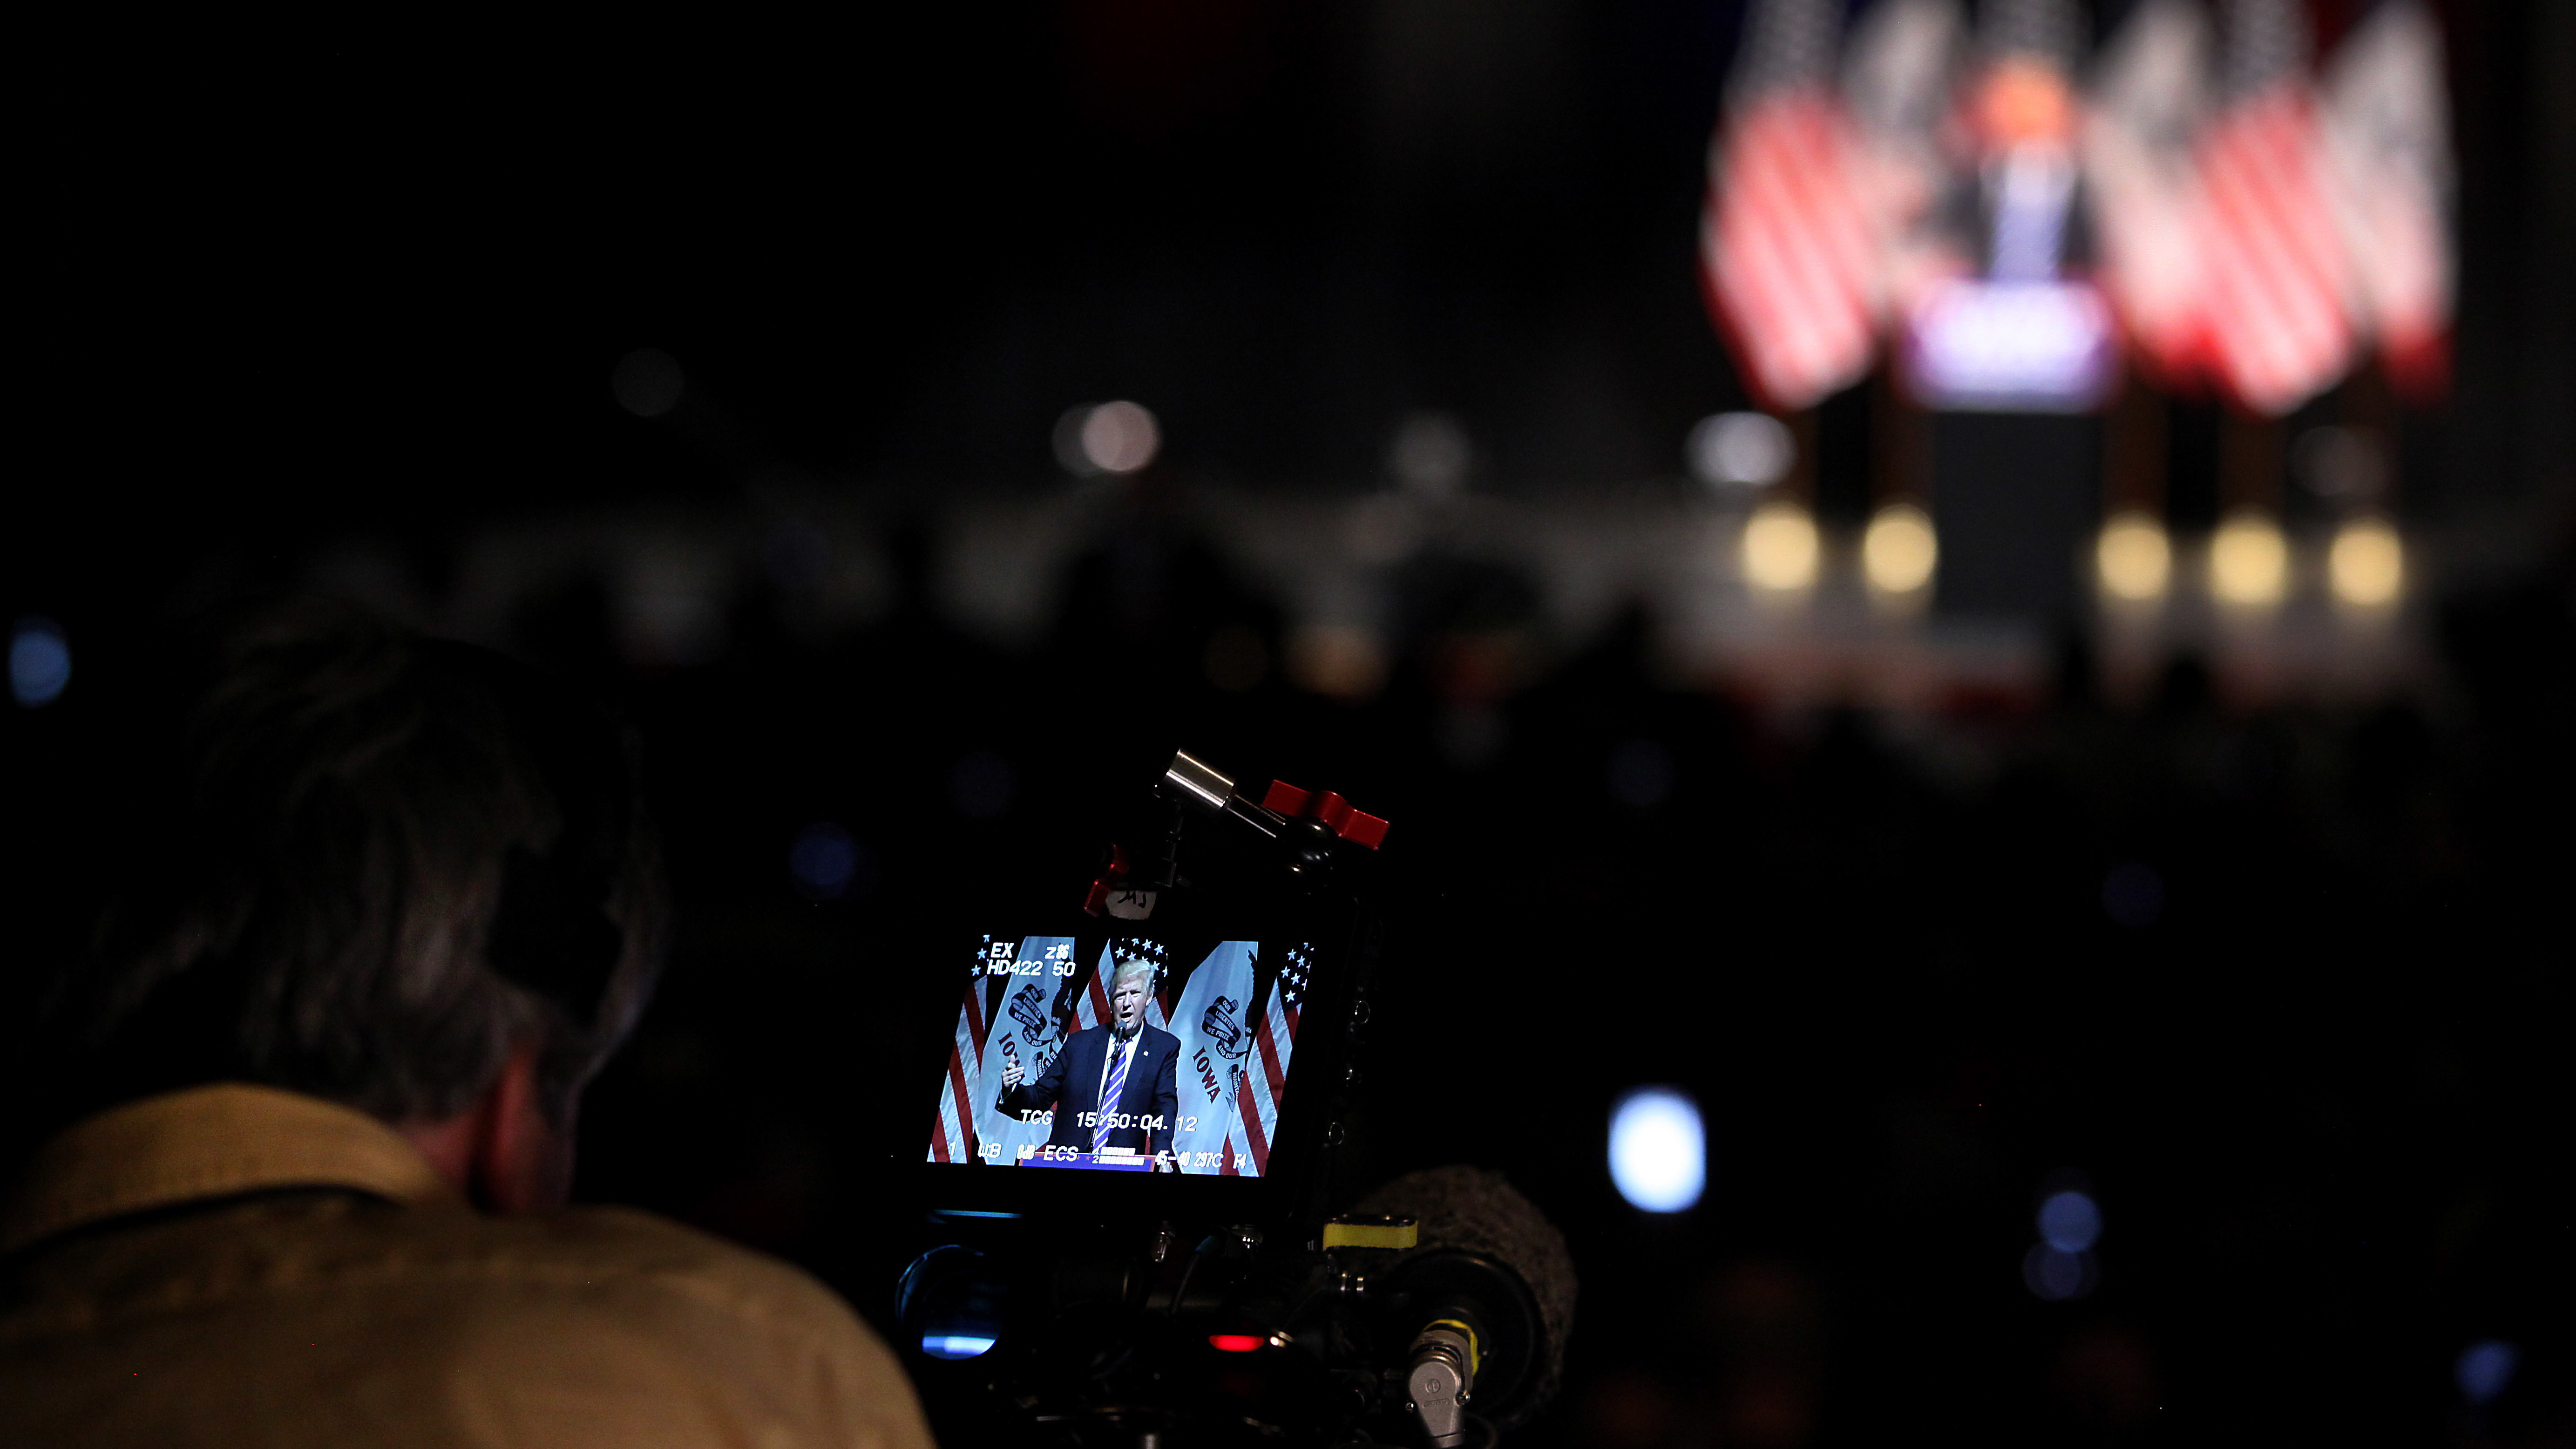 Republican presidential candidate Donald Trump seen on a camera monitor during a campaign this summer.